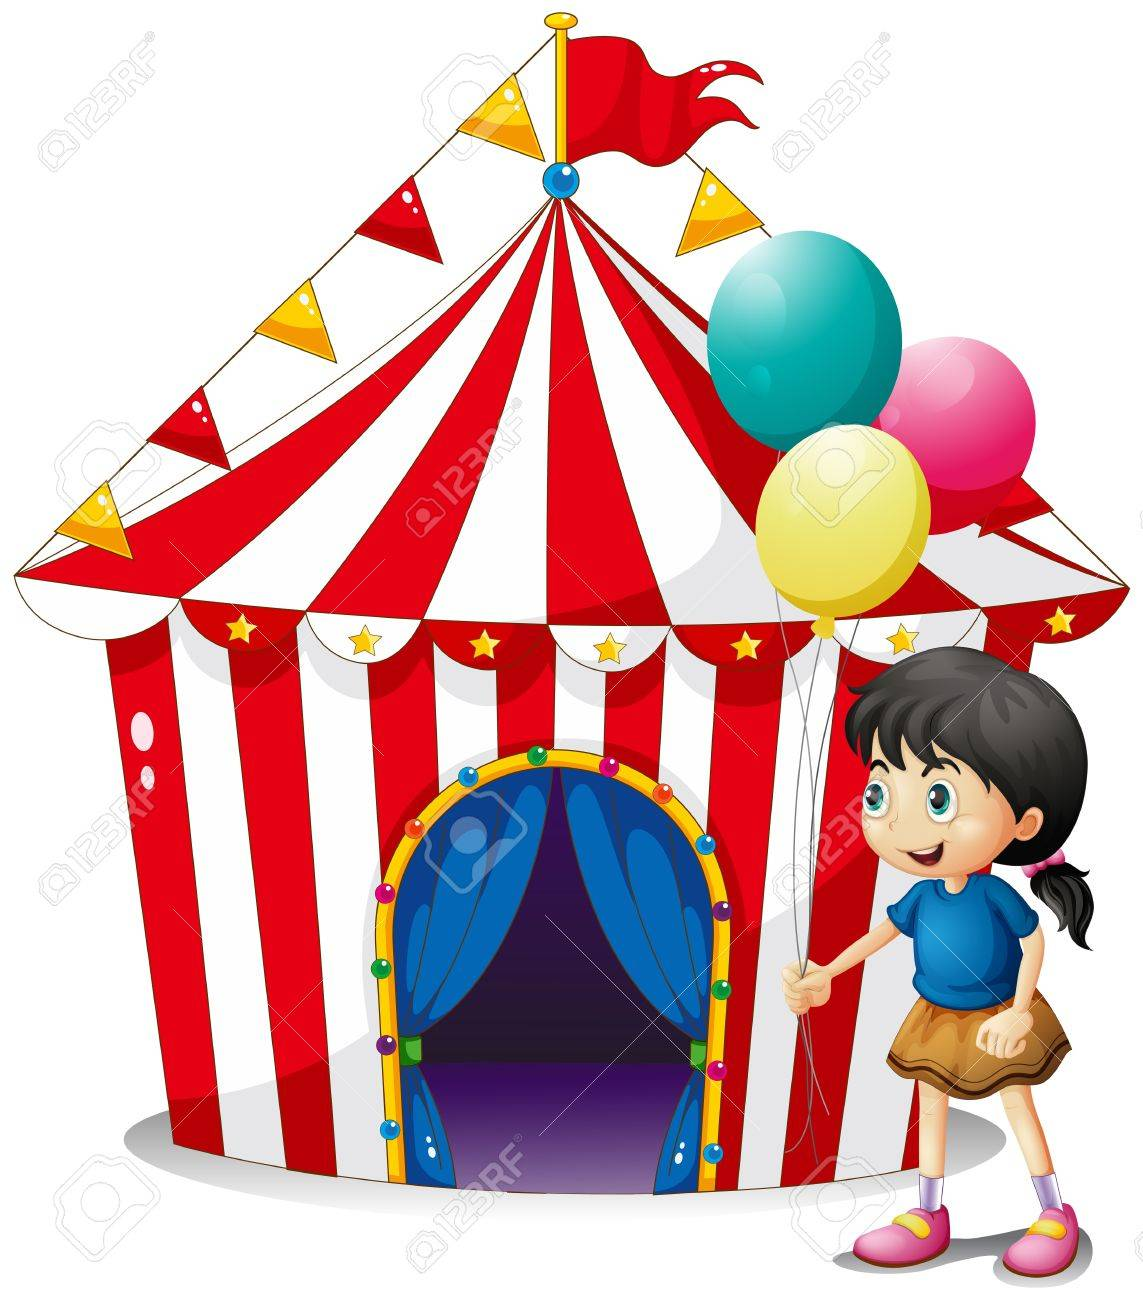 Illustration of a girl with balloons in front of the circus tent on a white background Stock Vector - 20272784